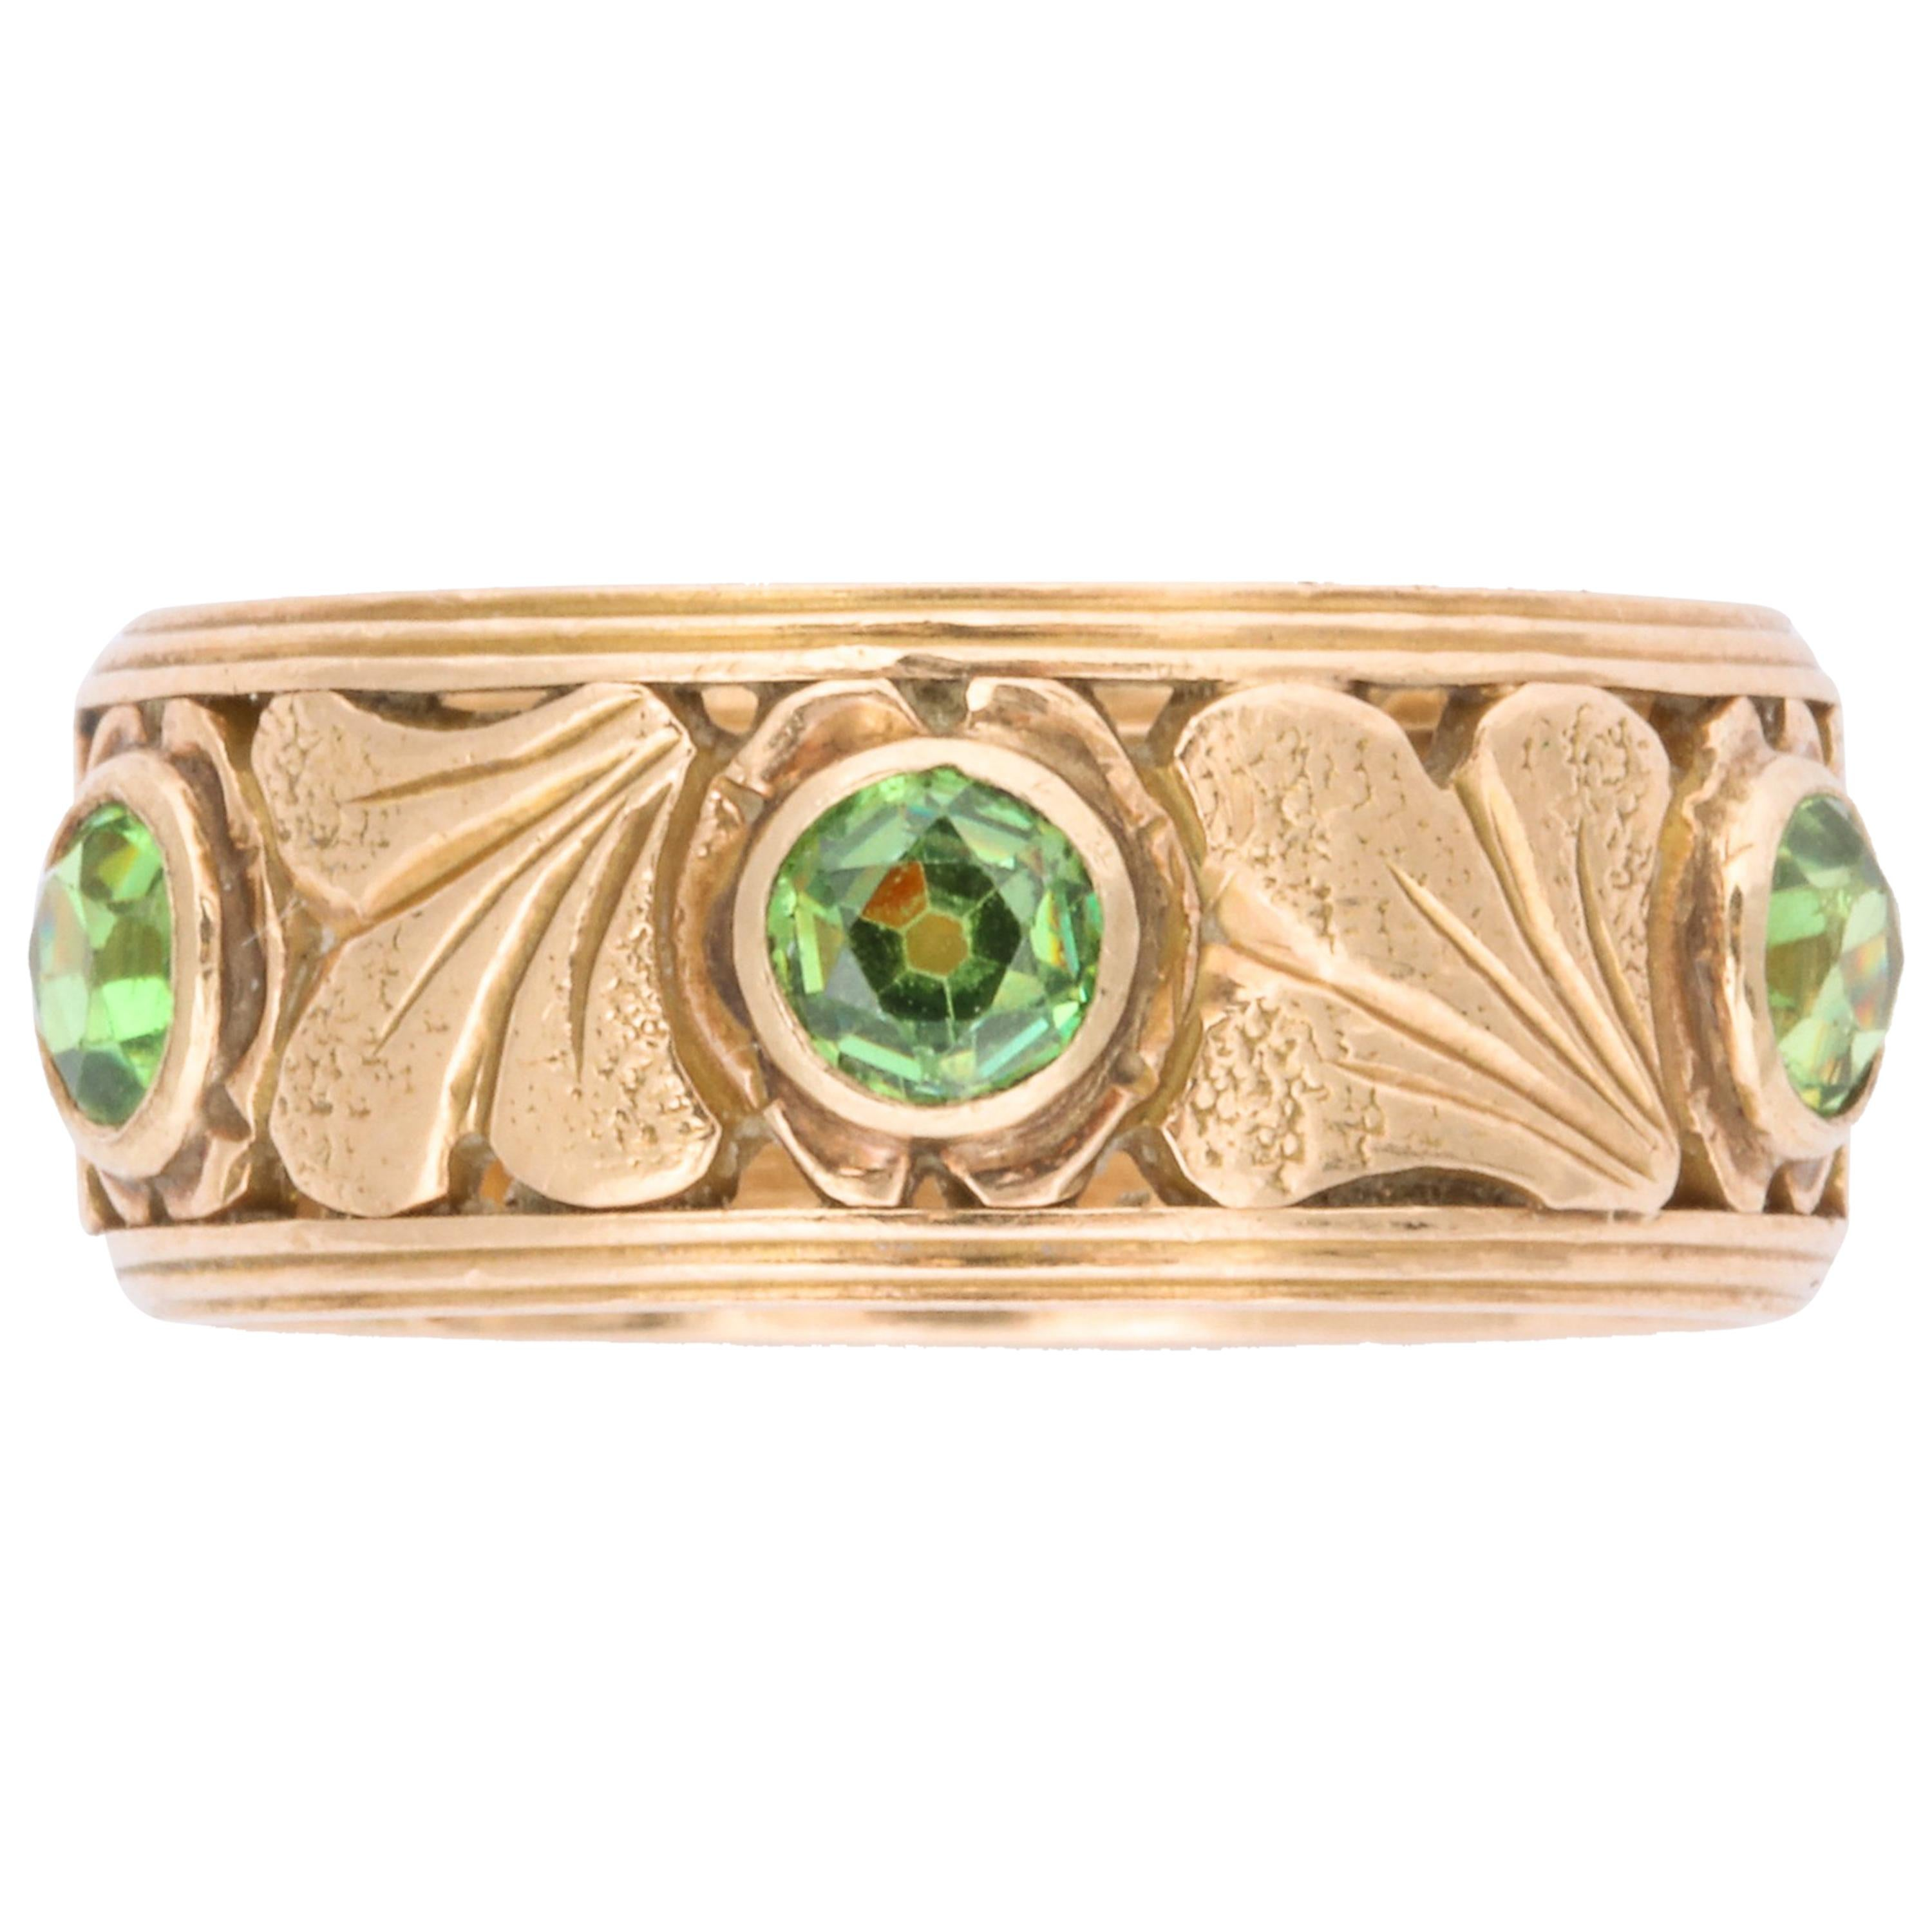 Antique Art Nouveau Gold and Demantoid Ring with Ginko Leaves